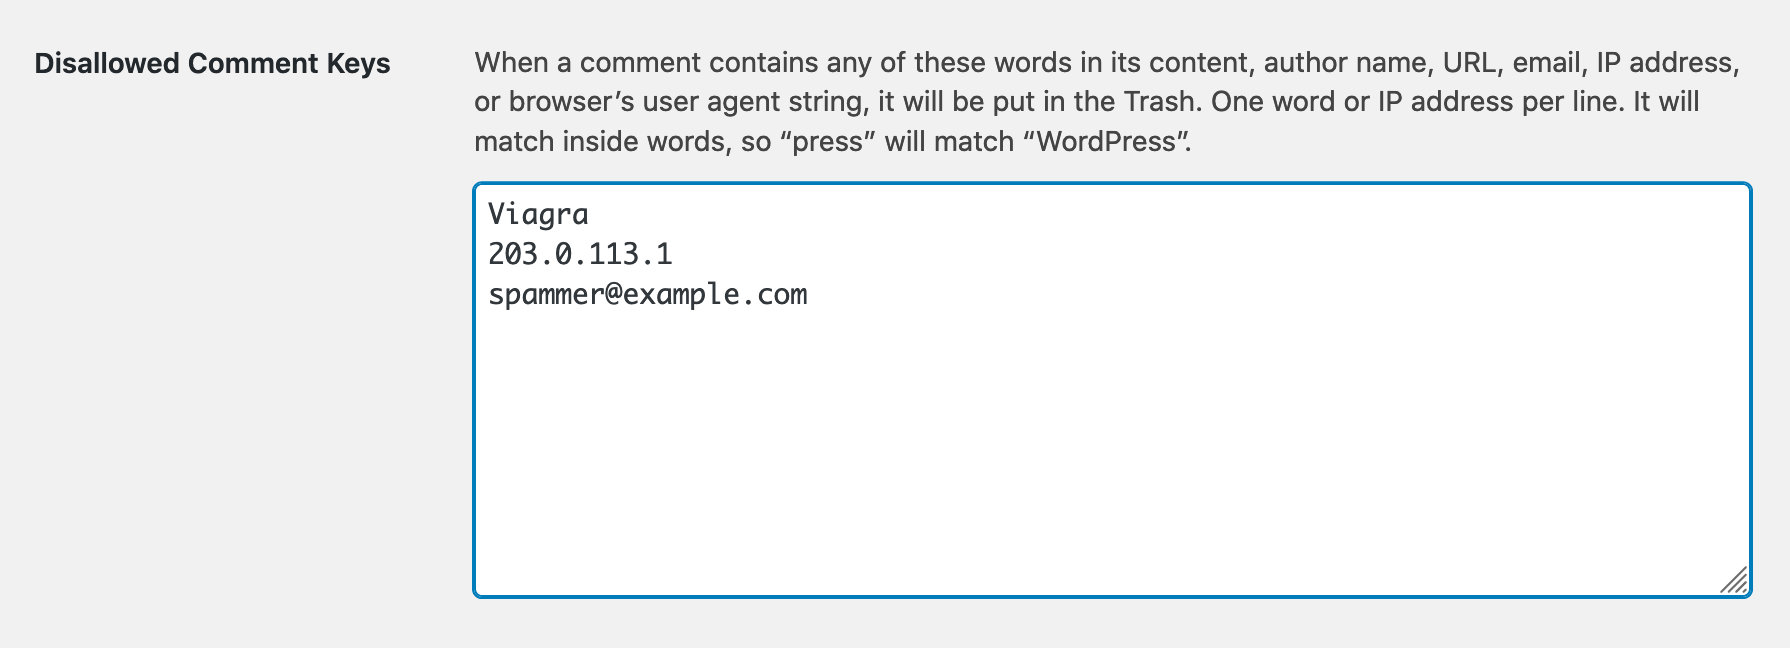 Screenshot of the Disallowed Comment Keys section